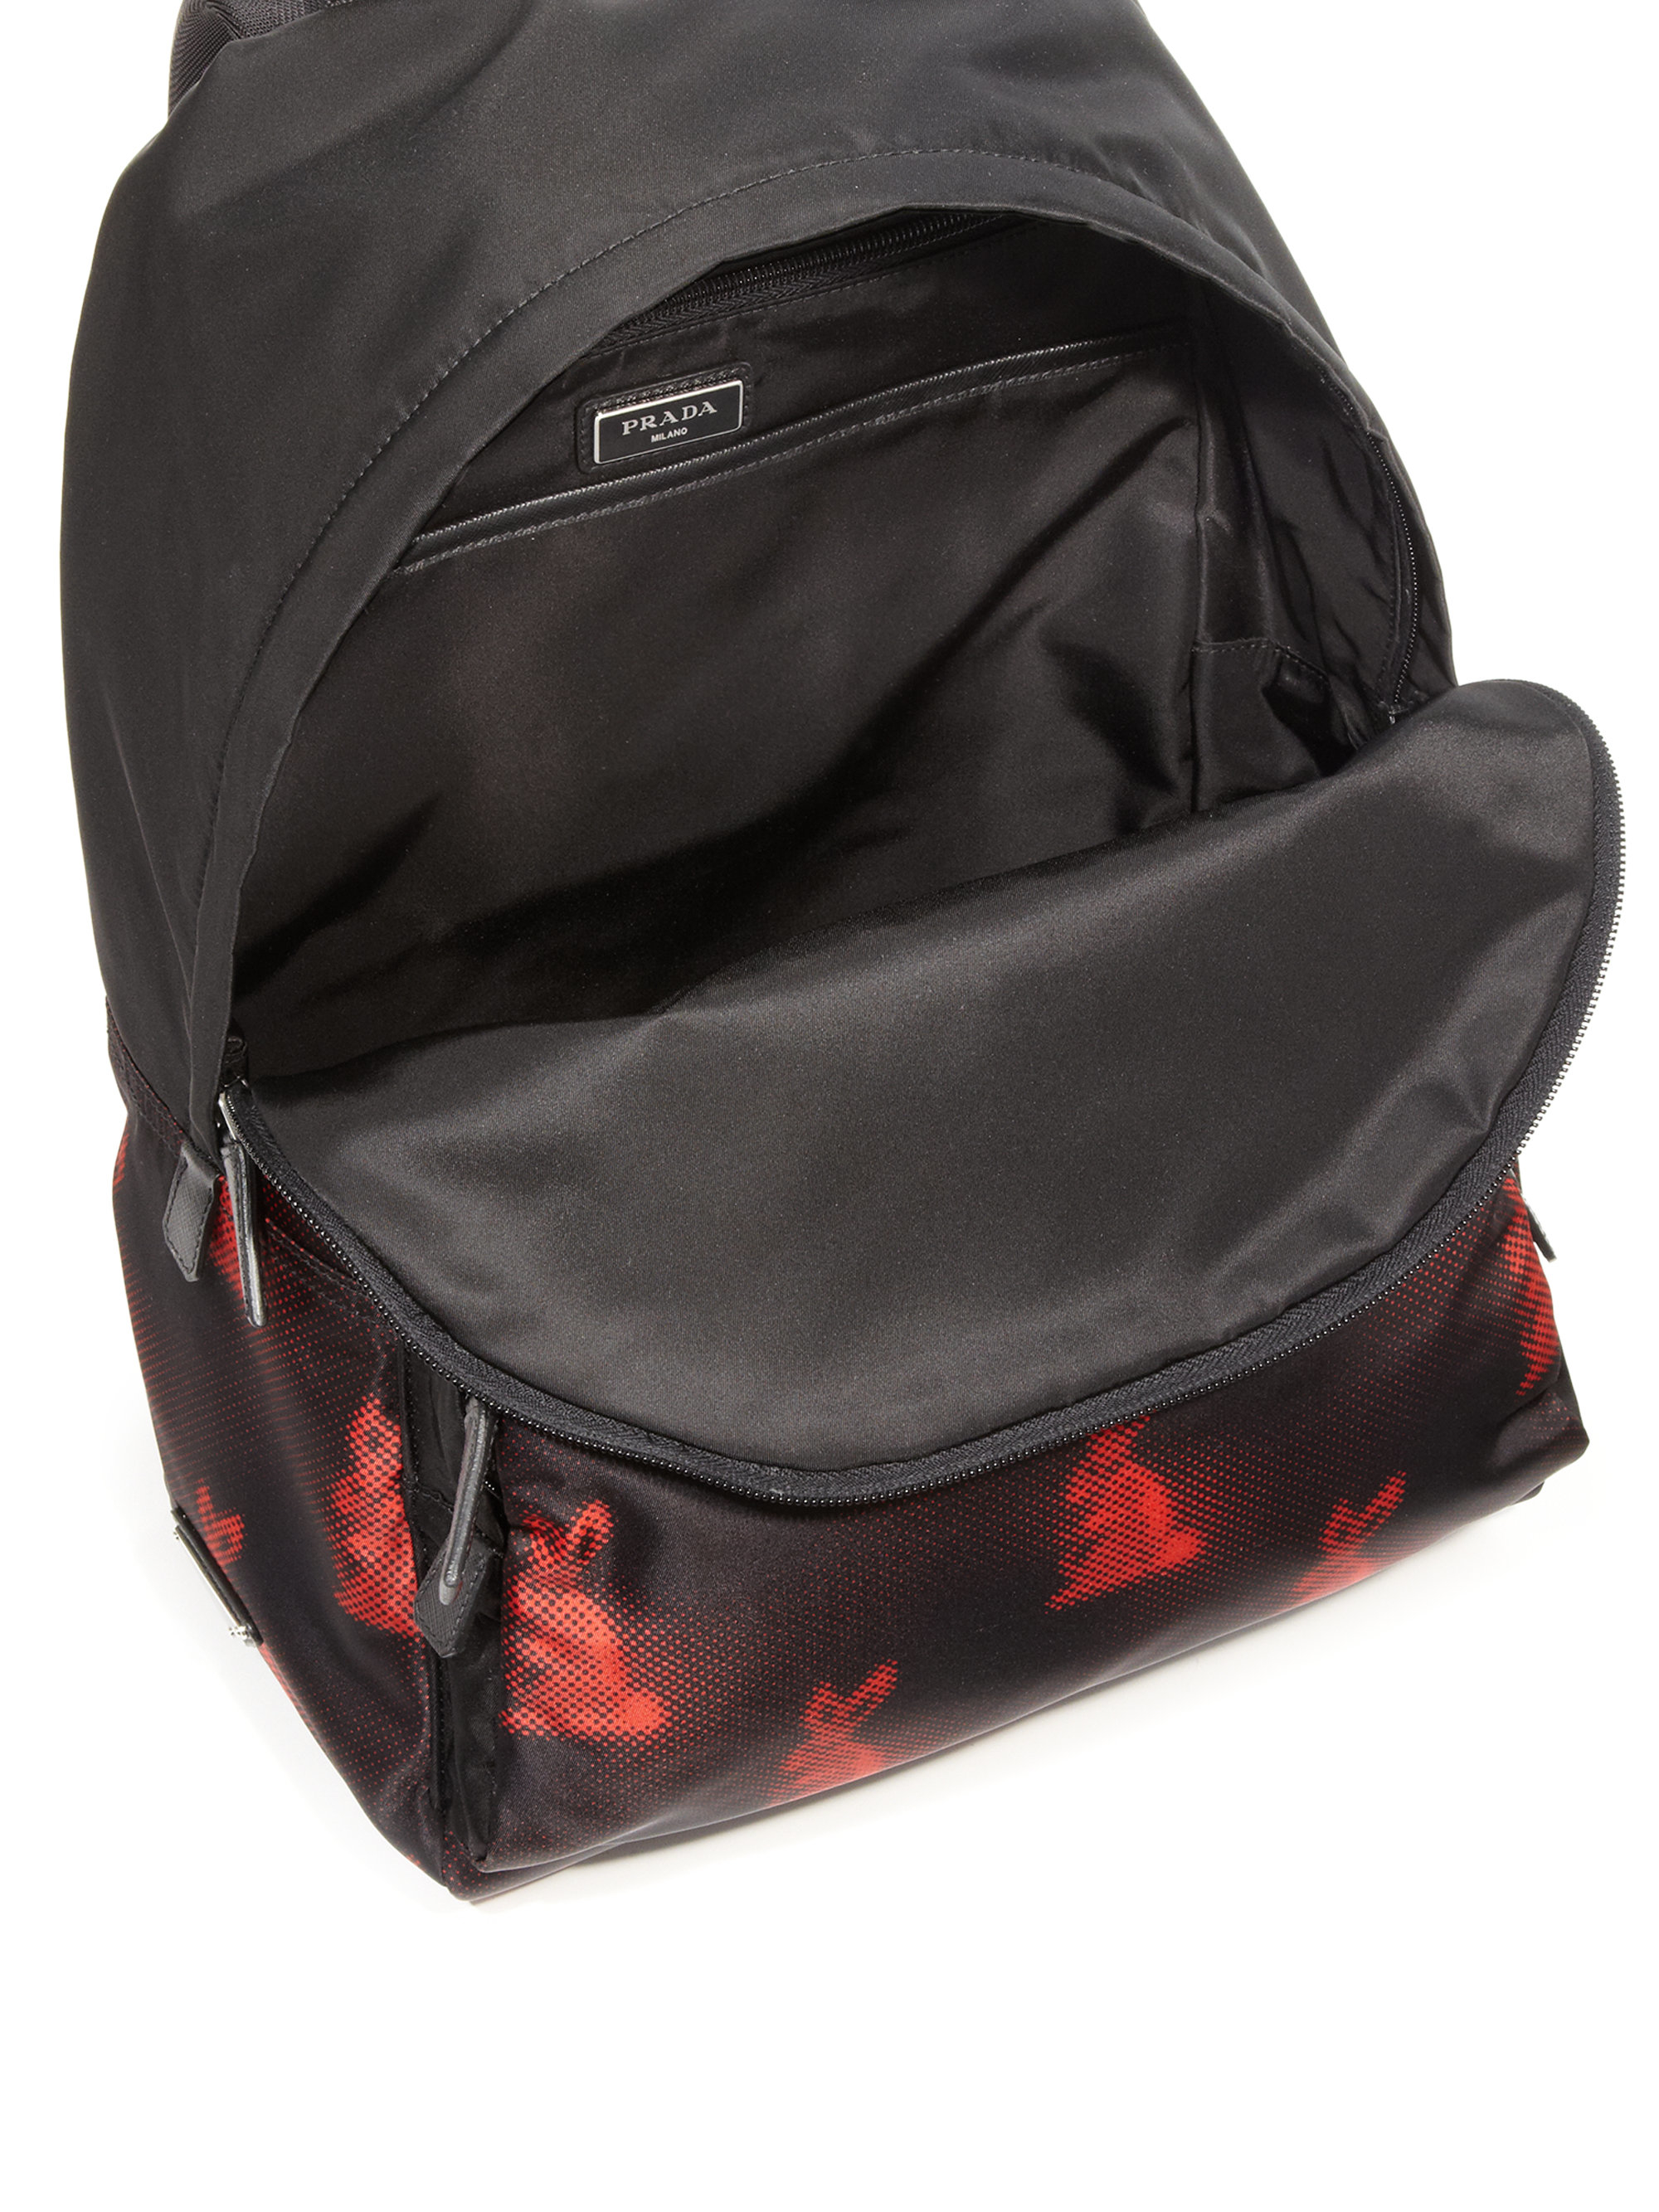 pink prada backpack - prada backpack red